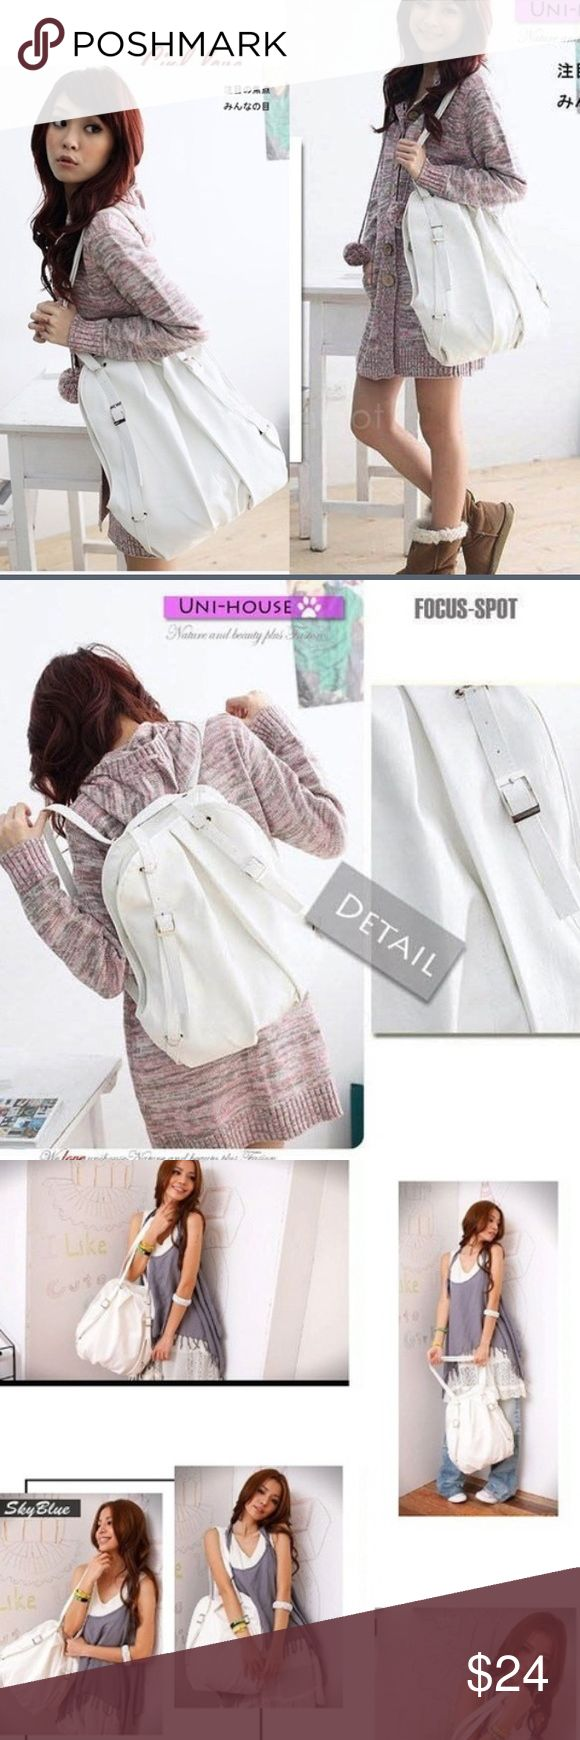 white back pack bag purse hobo New Korean Style Fashion lady 2 Ways synthetic leather Backpack Purse Handbag Shoulders Bag white back pack bag purse hobo backpack Bags Backpacks